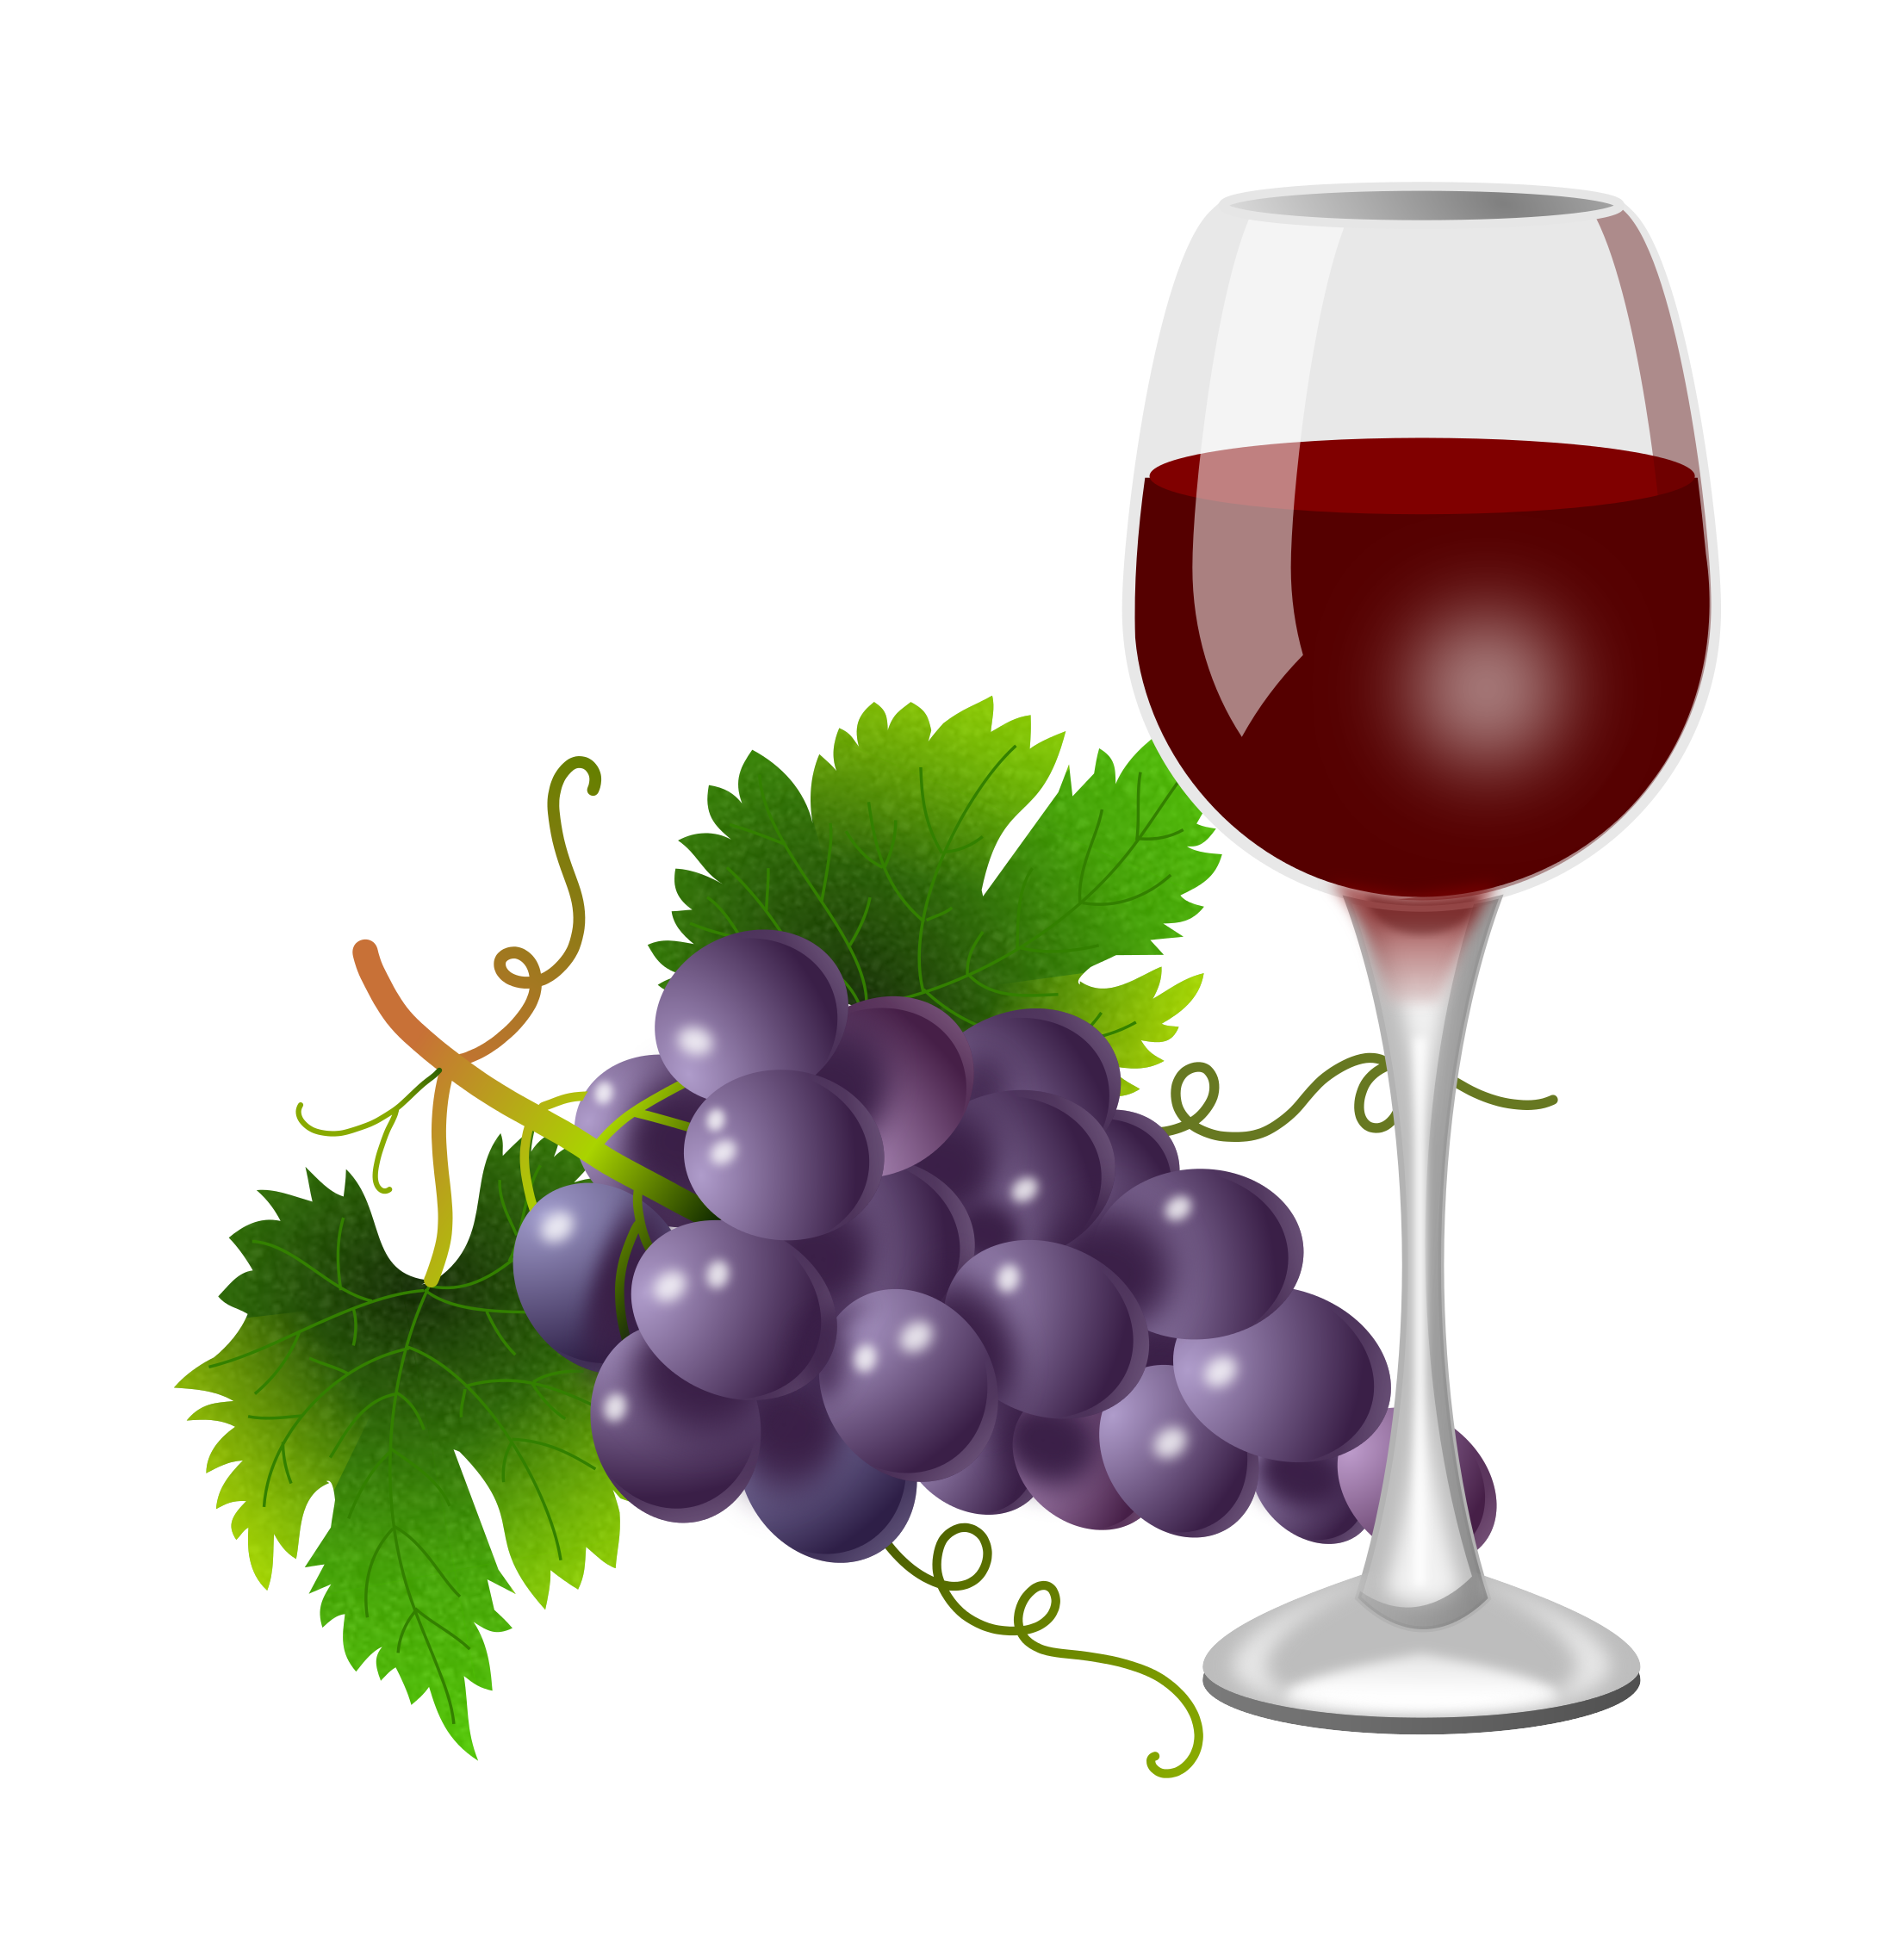 Purple clipart wine glass. Grapes and x everyday